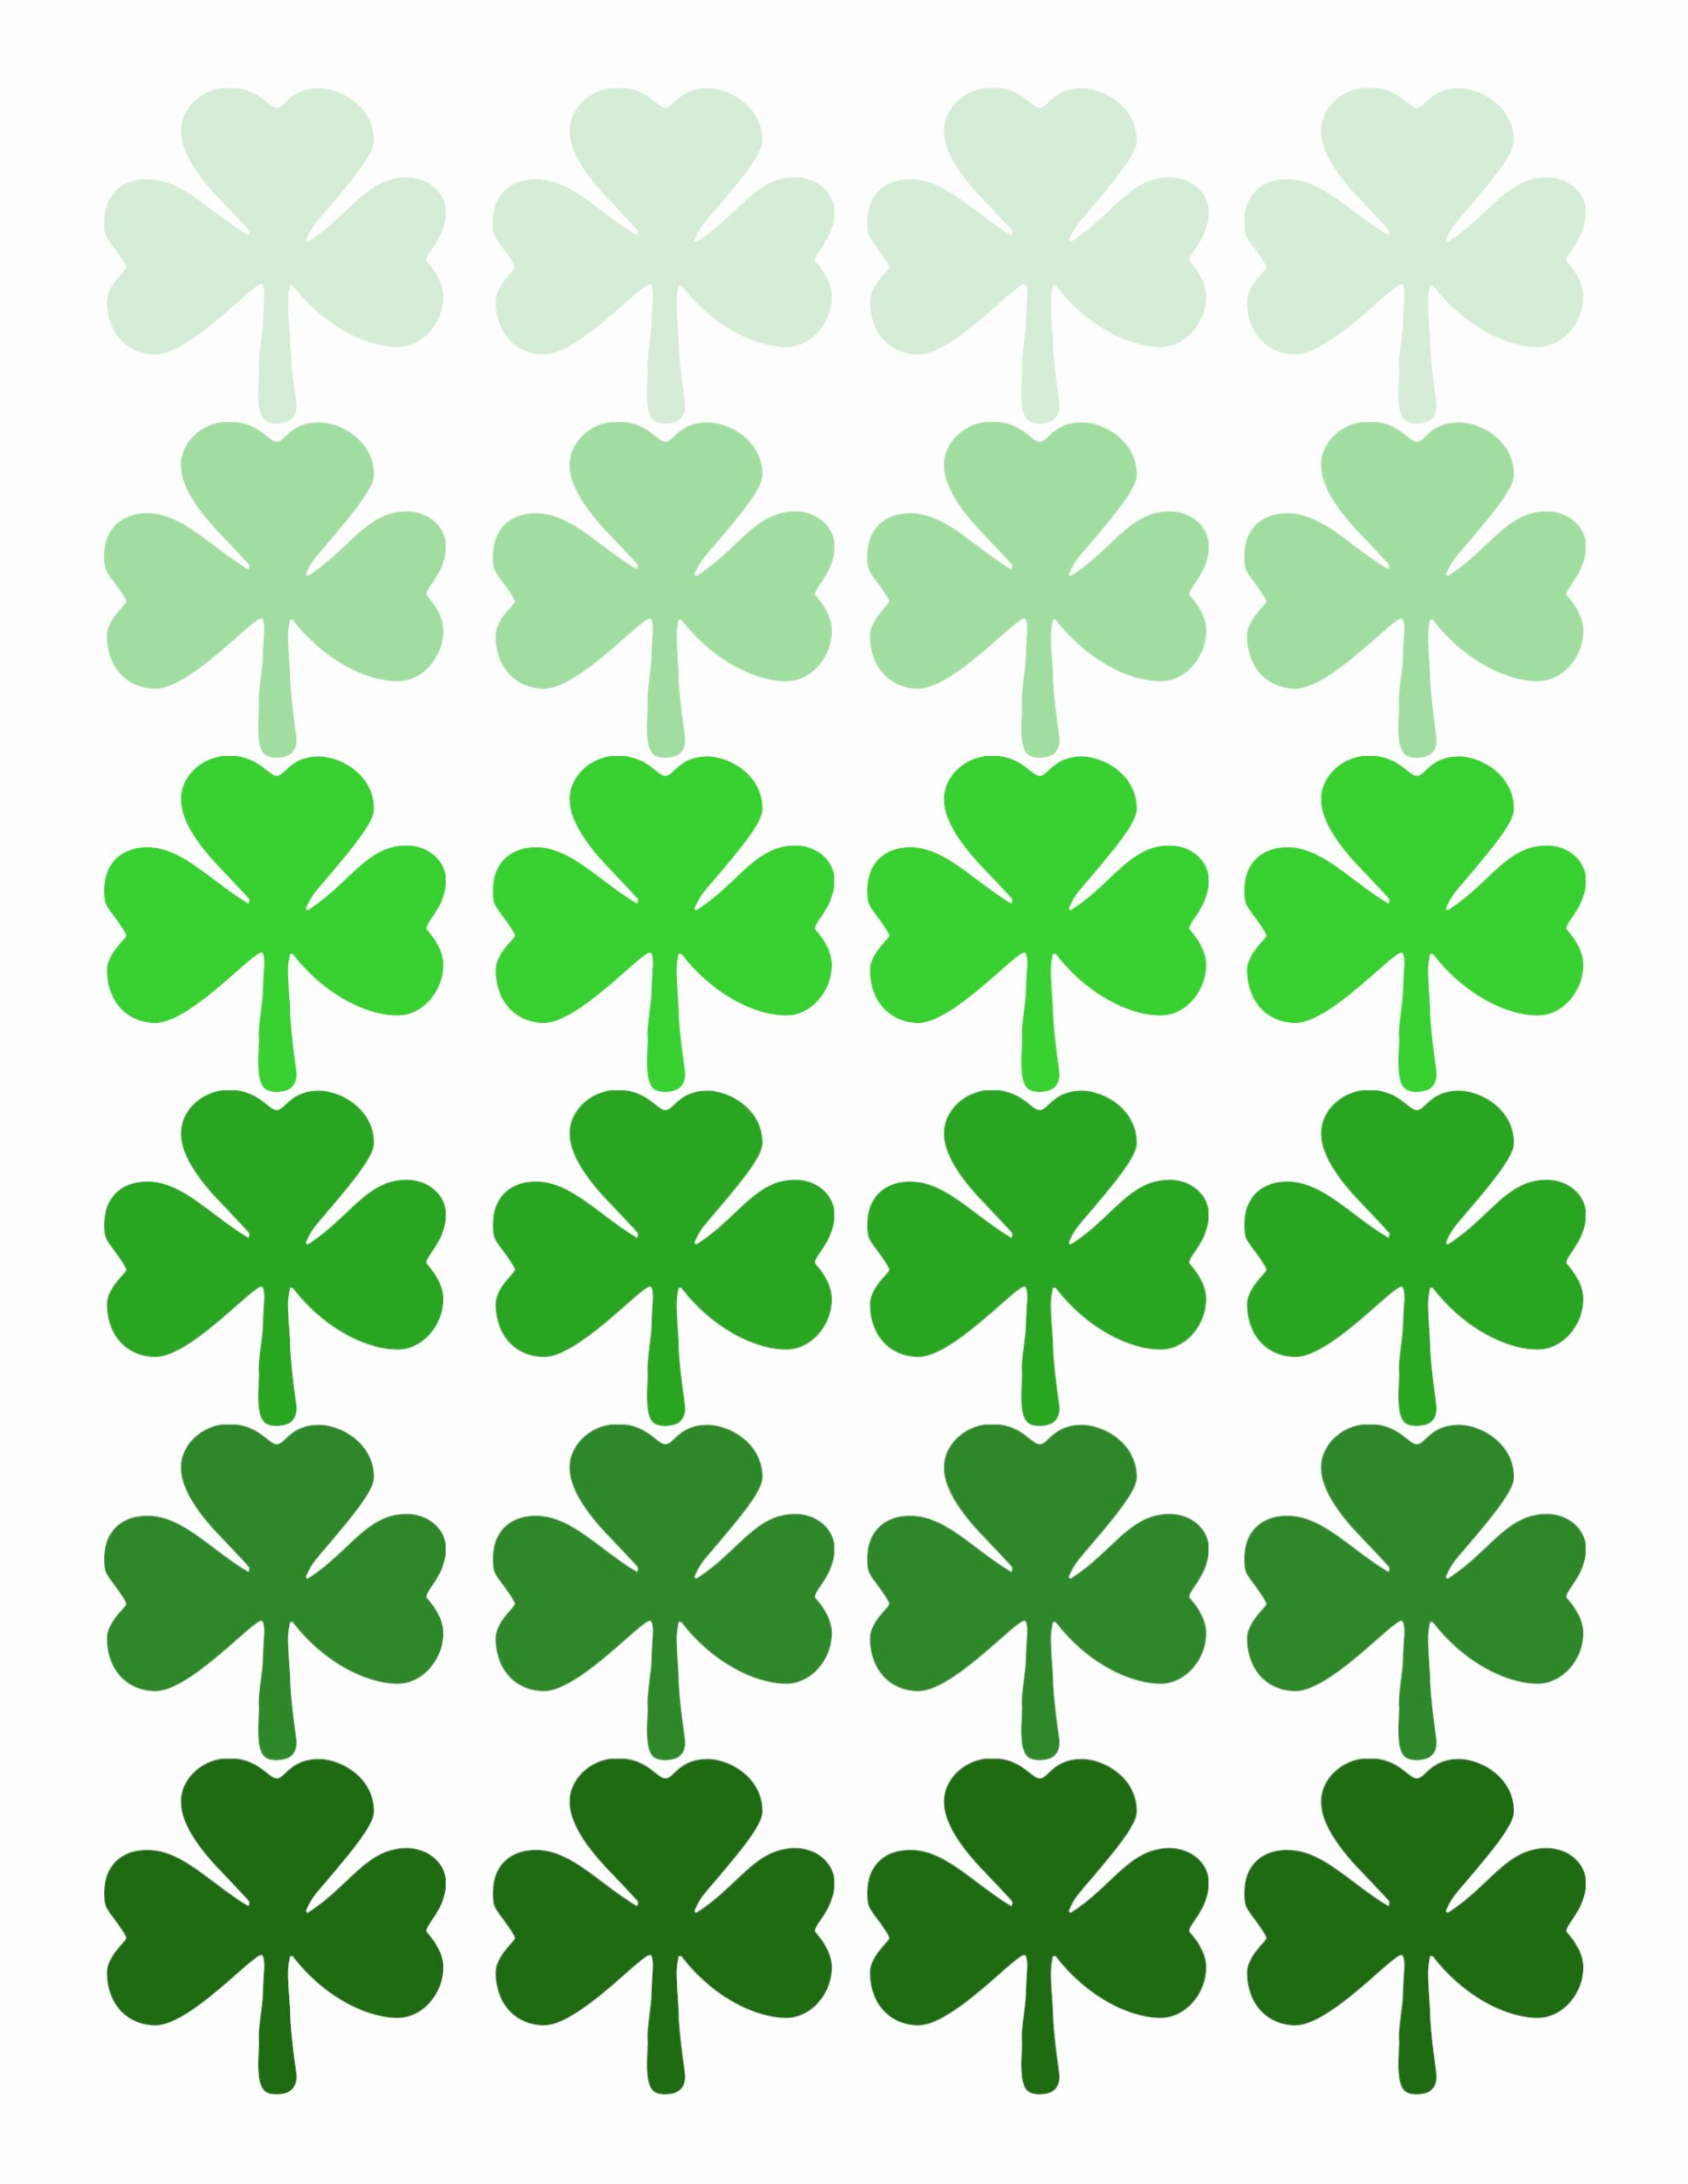 Shamrock Pictures to Print Luxury Shamrock Pattern Printable St Patrick S Day Decor Paper